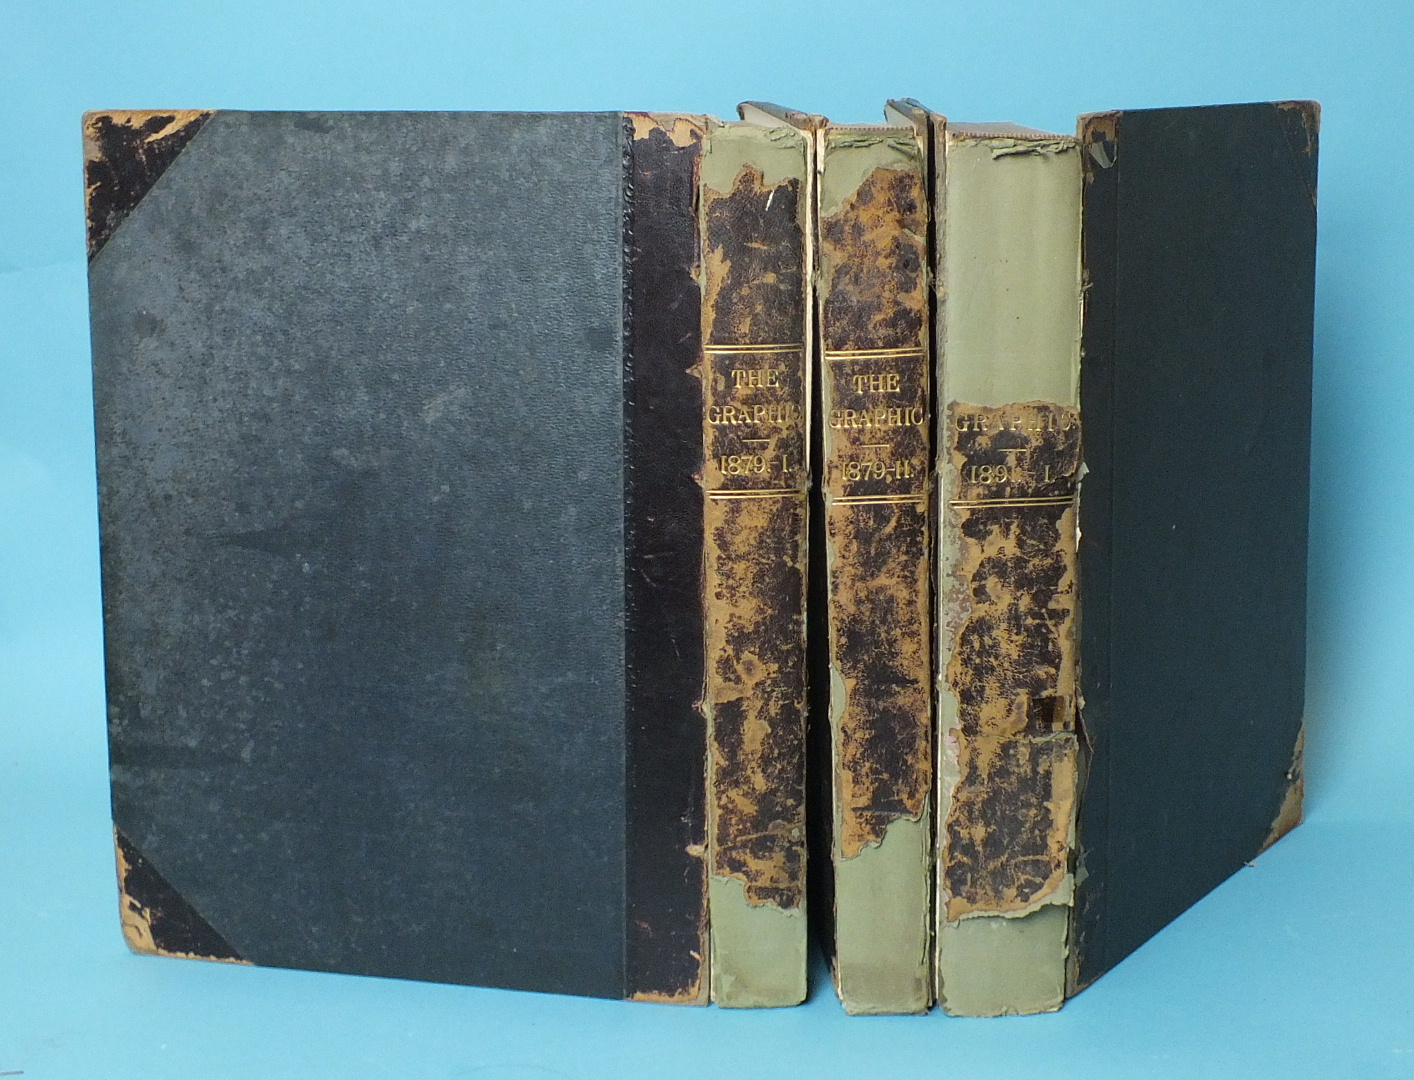 The Graphic, 3 vols, 1879 (I & II) and 1891 (I), hf mor gt, fo, (bindings af, one bd on 1891 vol